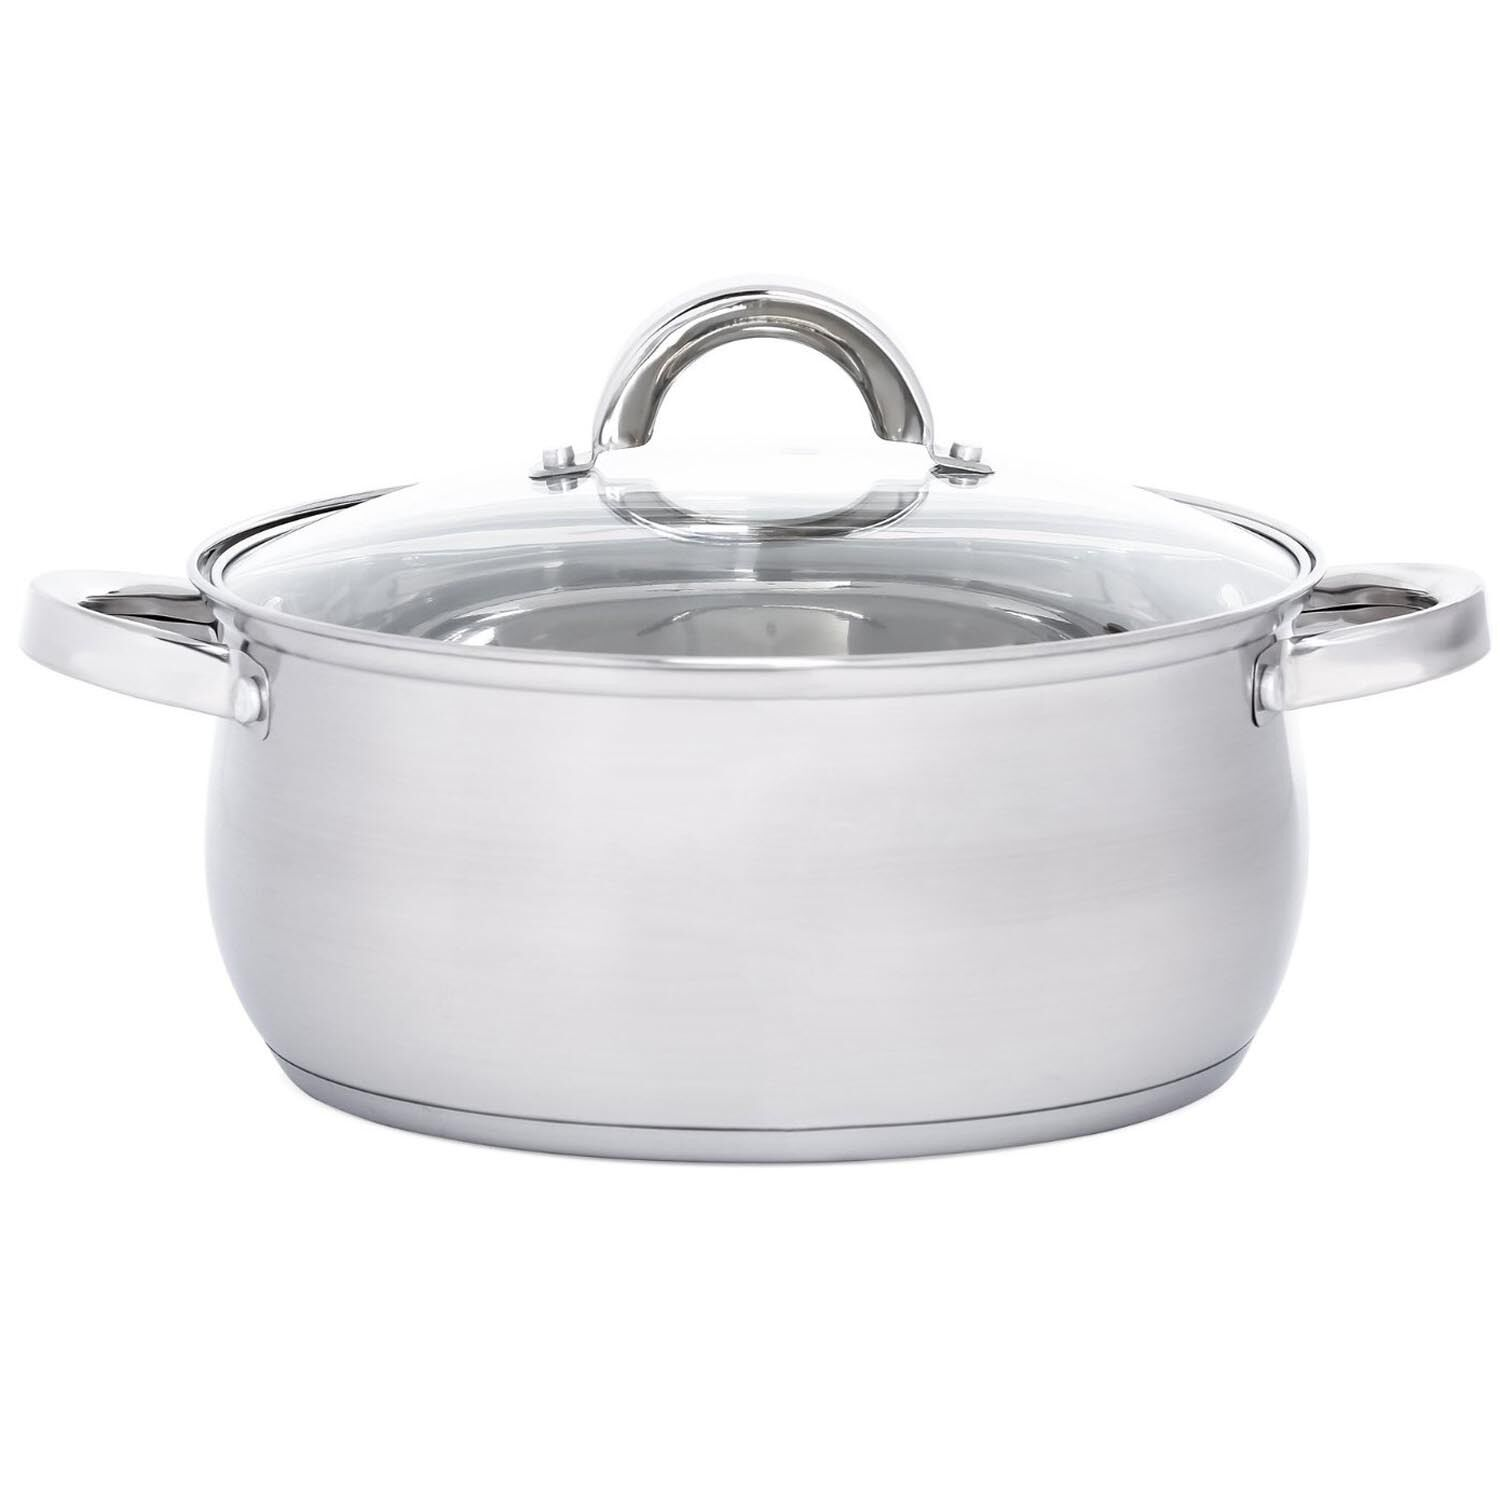 Kitchen Set Pots And Pans: Heim's 12 Pieces Cooking Pots And Pans Kitchen Stainless